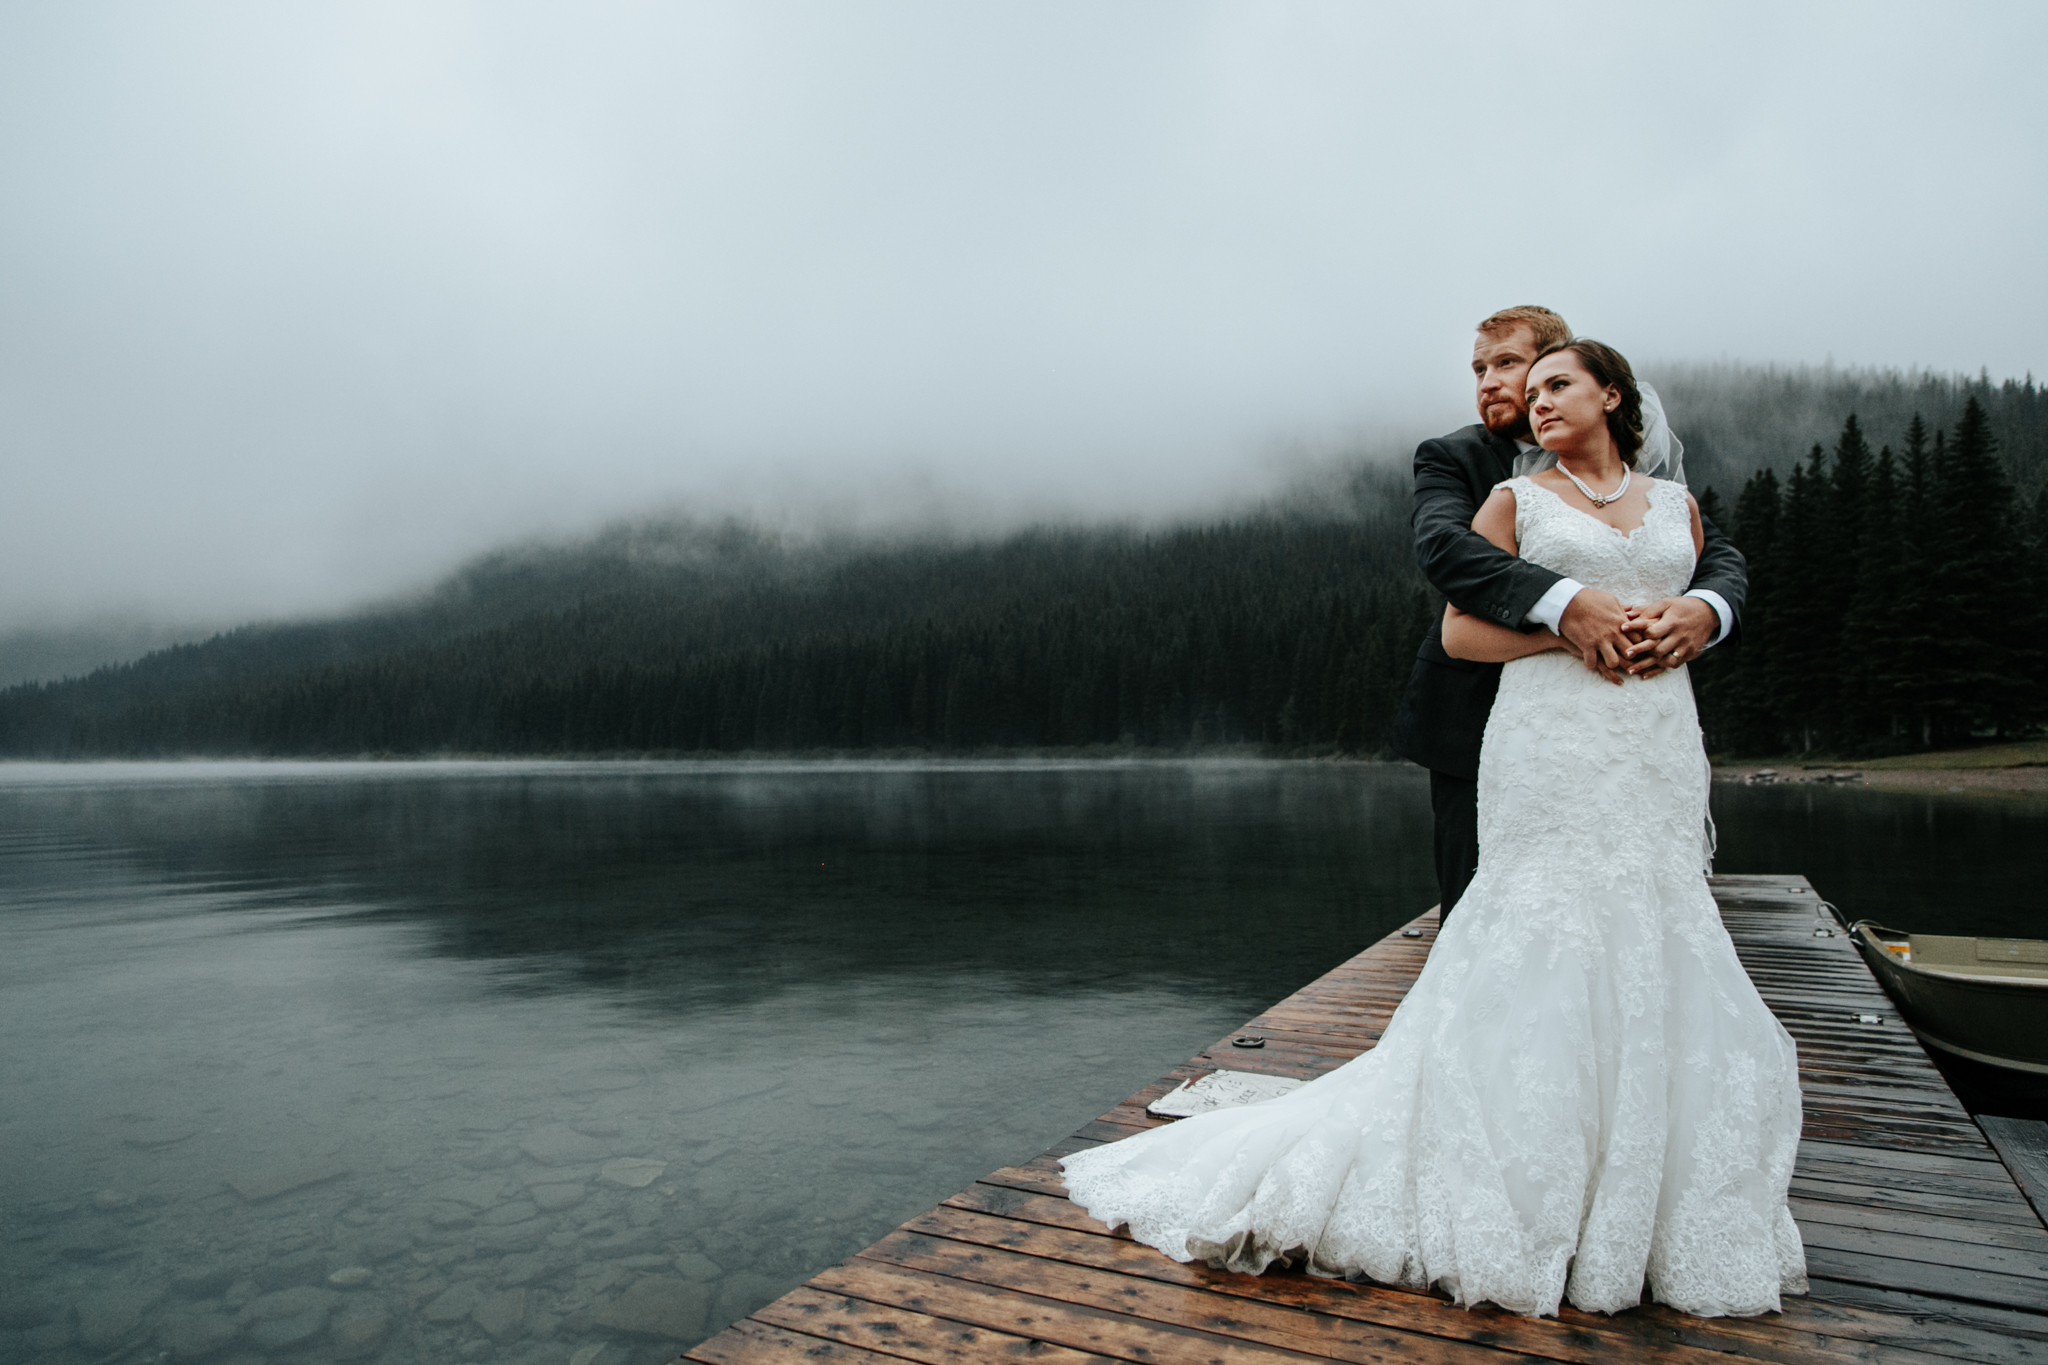 lethbridge-wedding-photography-love-and-be-loved-photographer-image-picture-photo-77.jpg